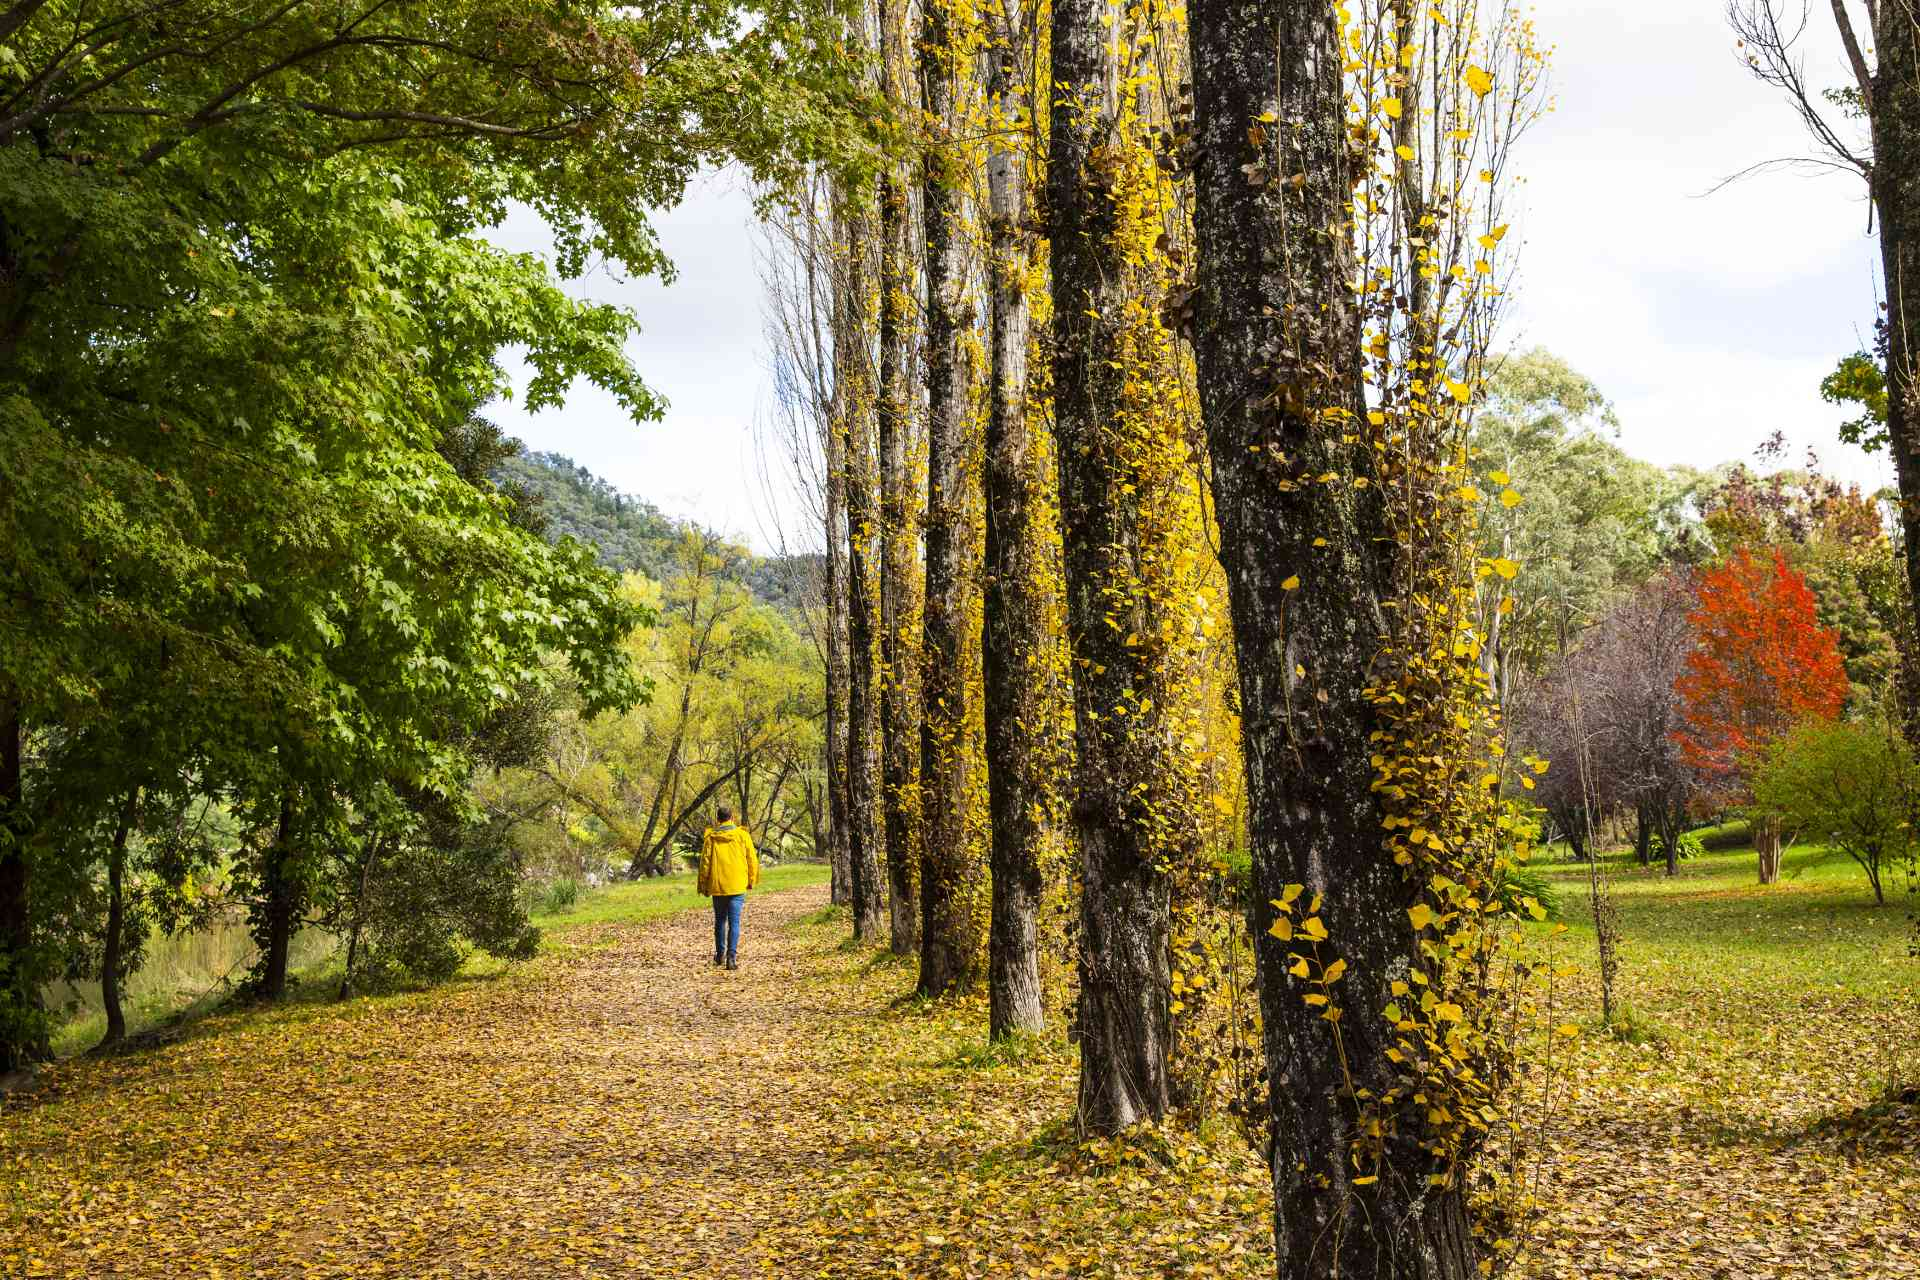 Autumn leaves in Bright, Victoria by Visit Victoria